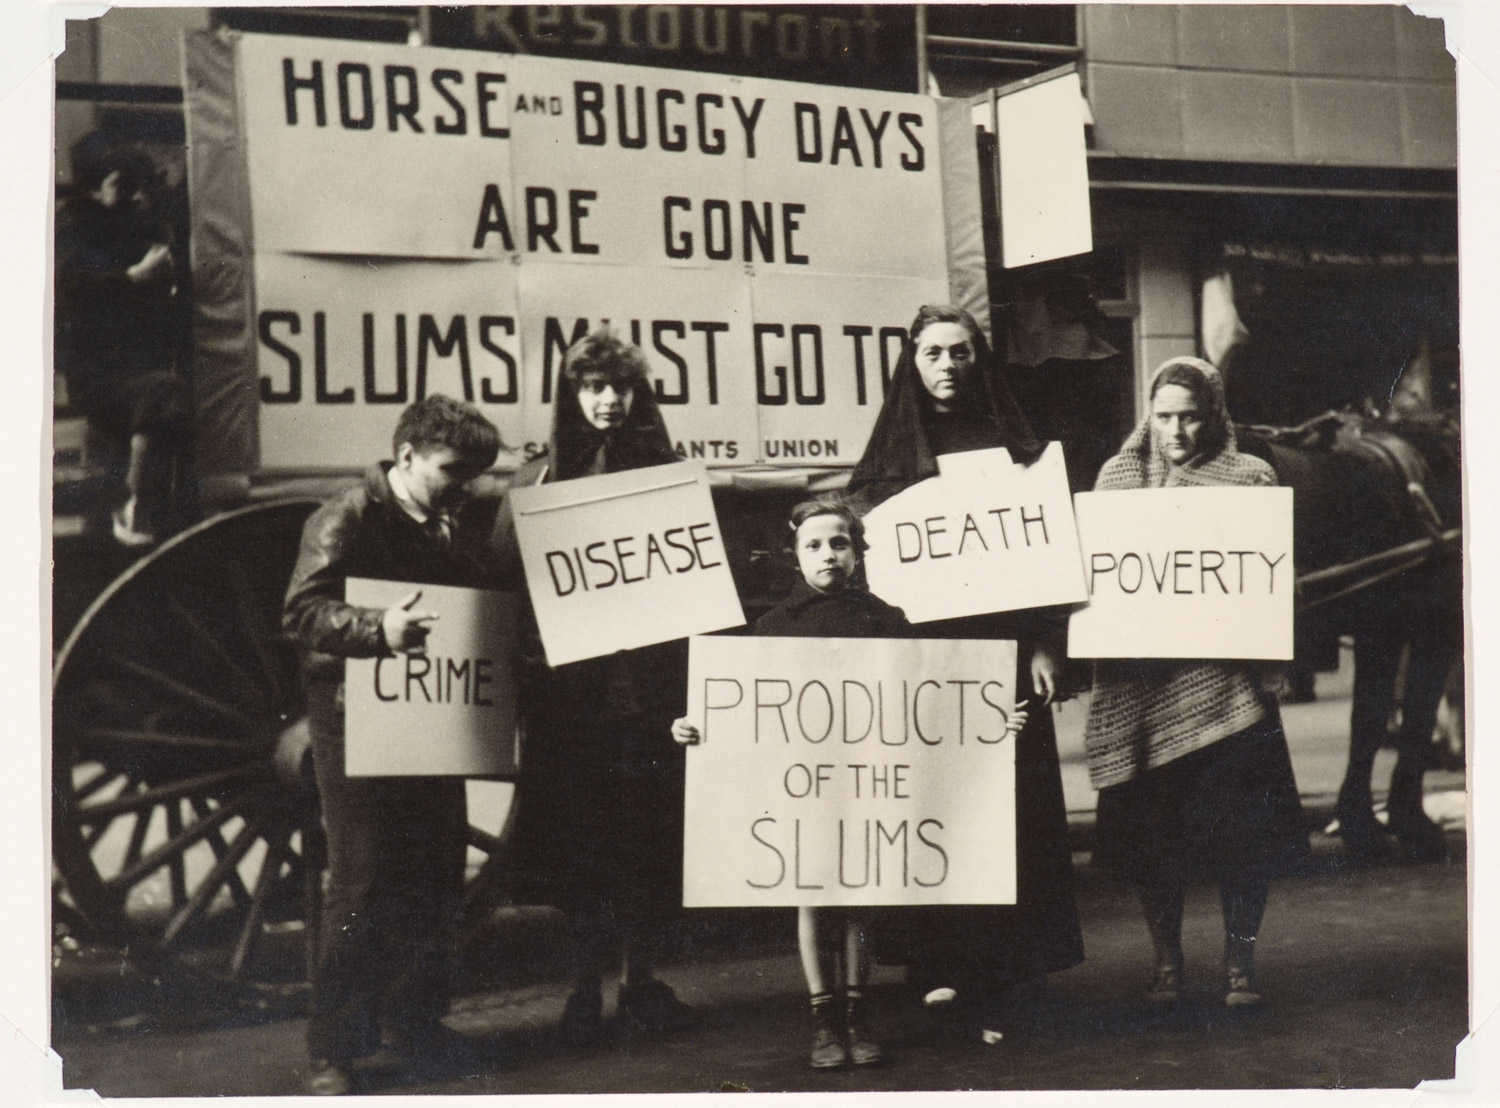 Slums Must Go! May Day Parade, New York, 1936